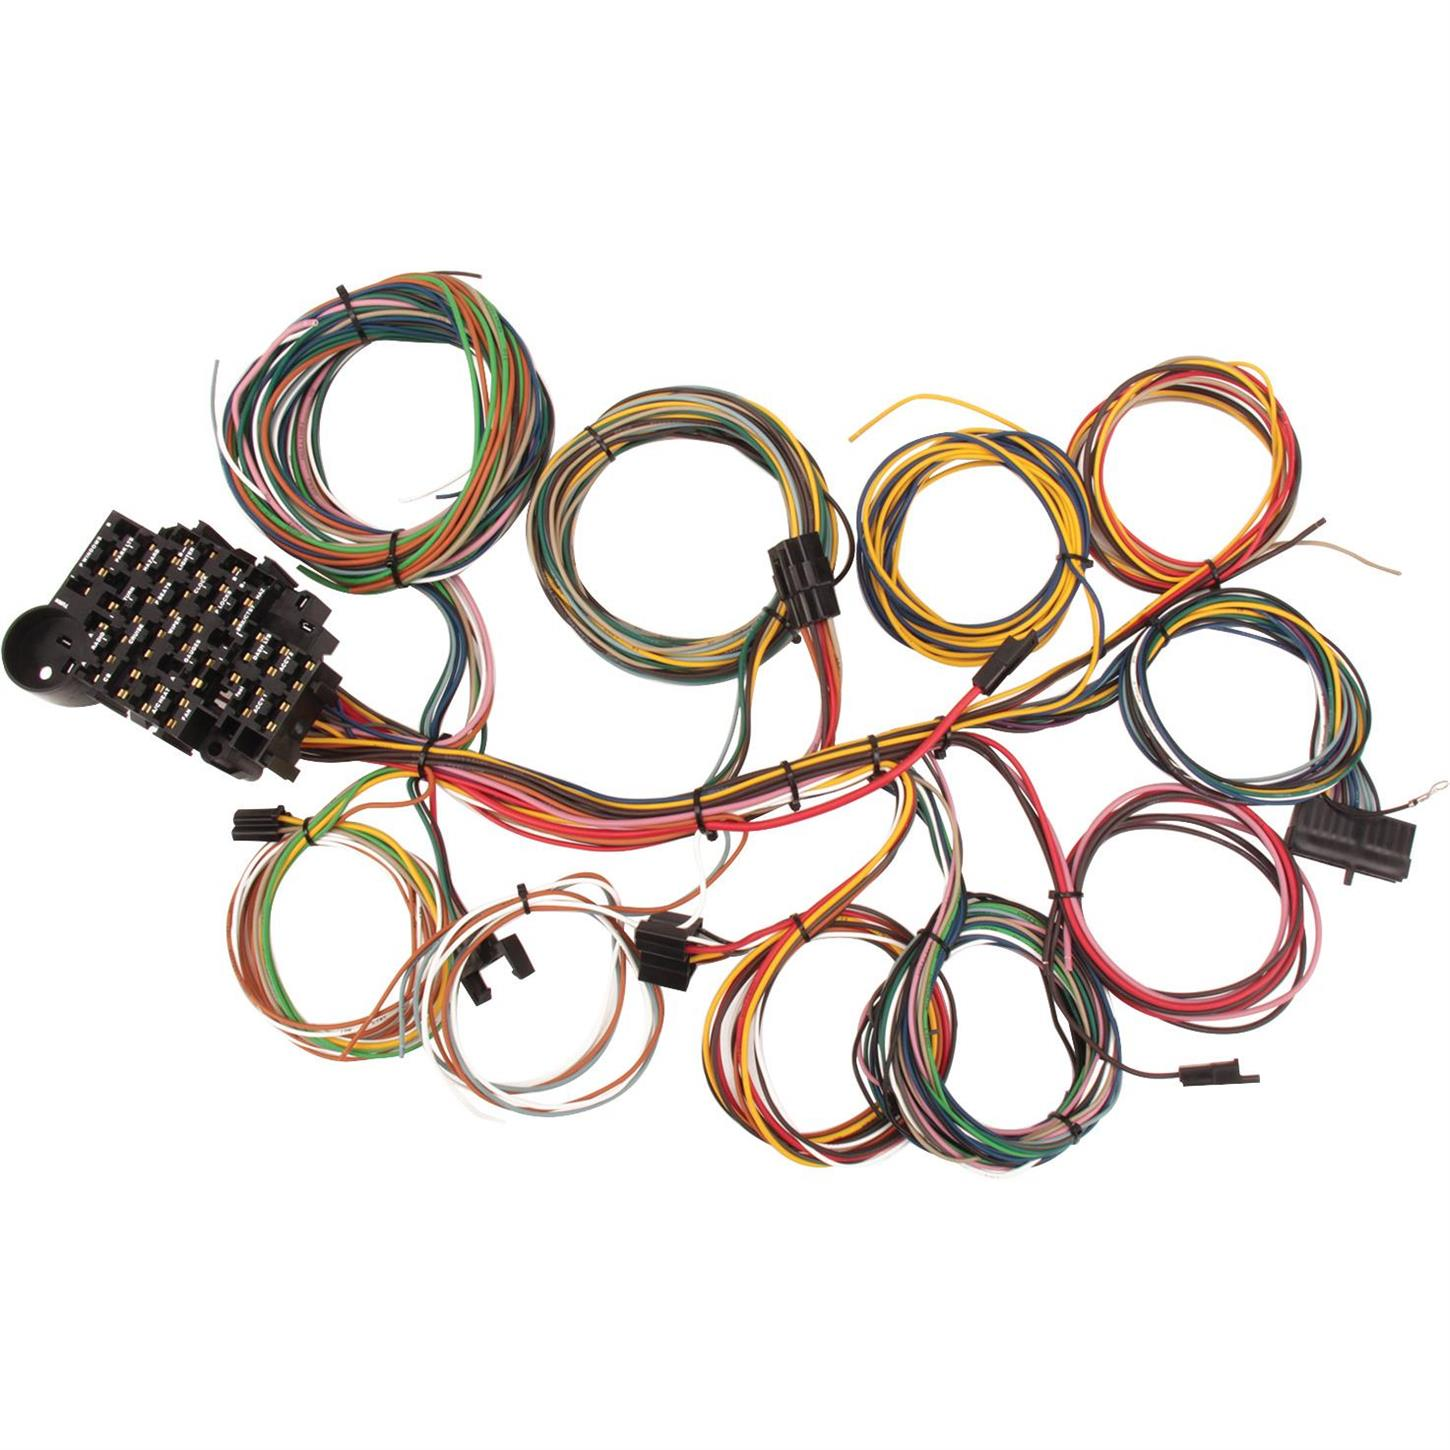 91064022_L1450_4a5a9e43 cdd2 4b2c 9c68 457f296054bd classic truck chassis wiring harnesses free shipping @ speedway wire harness 12086760 at gsmx.co